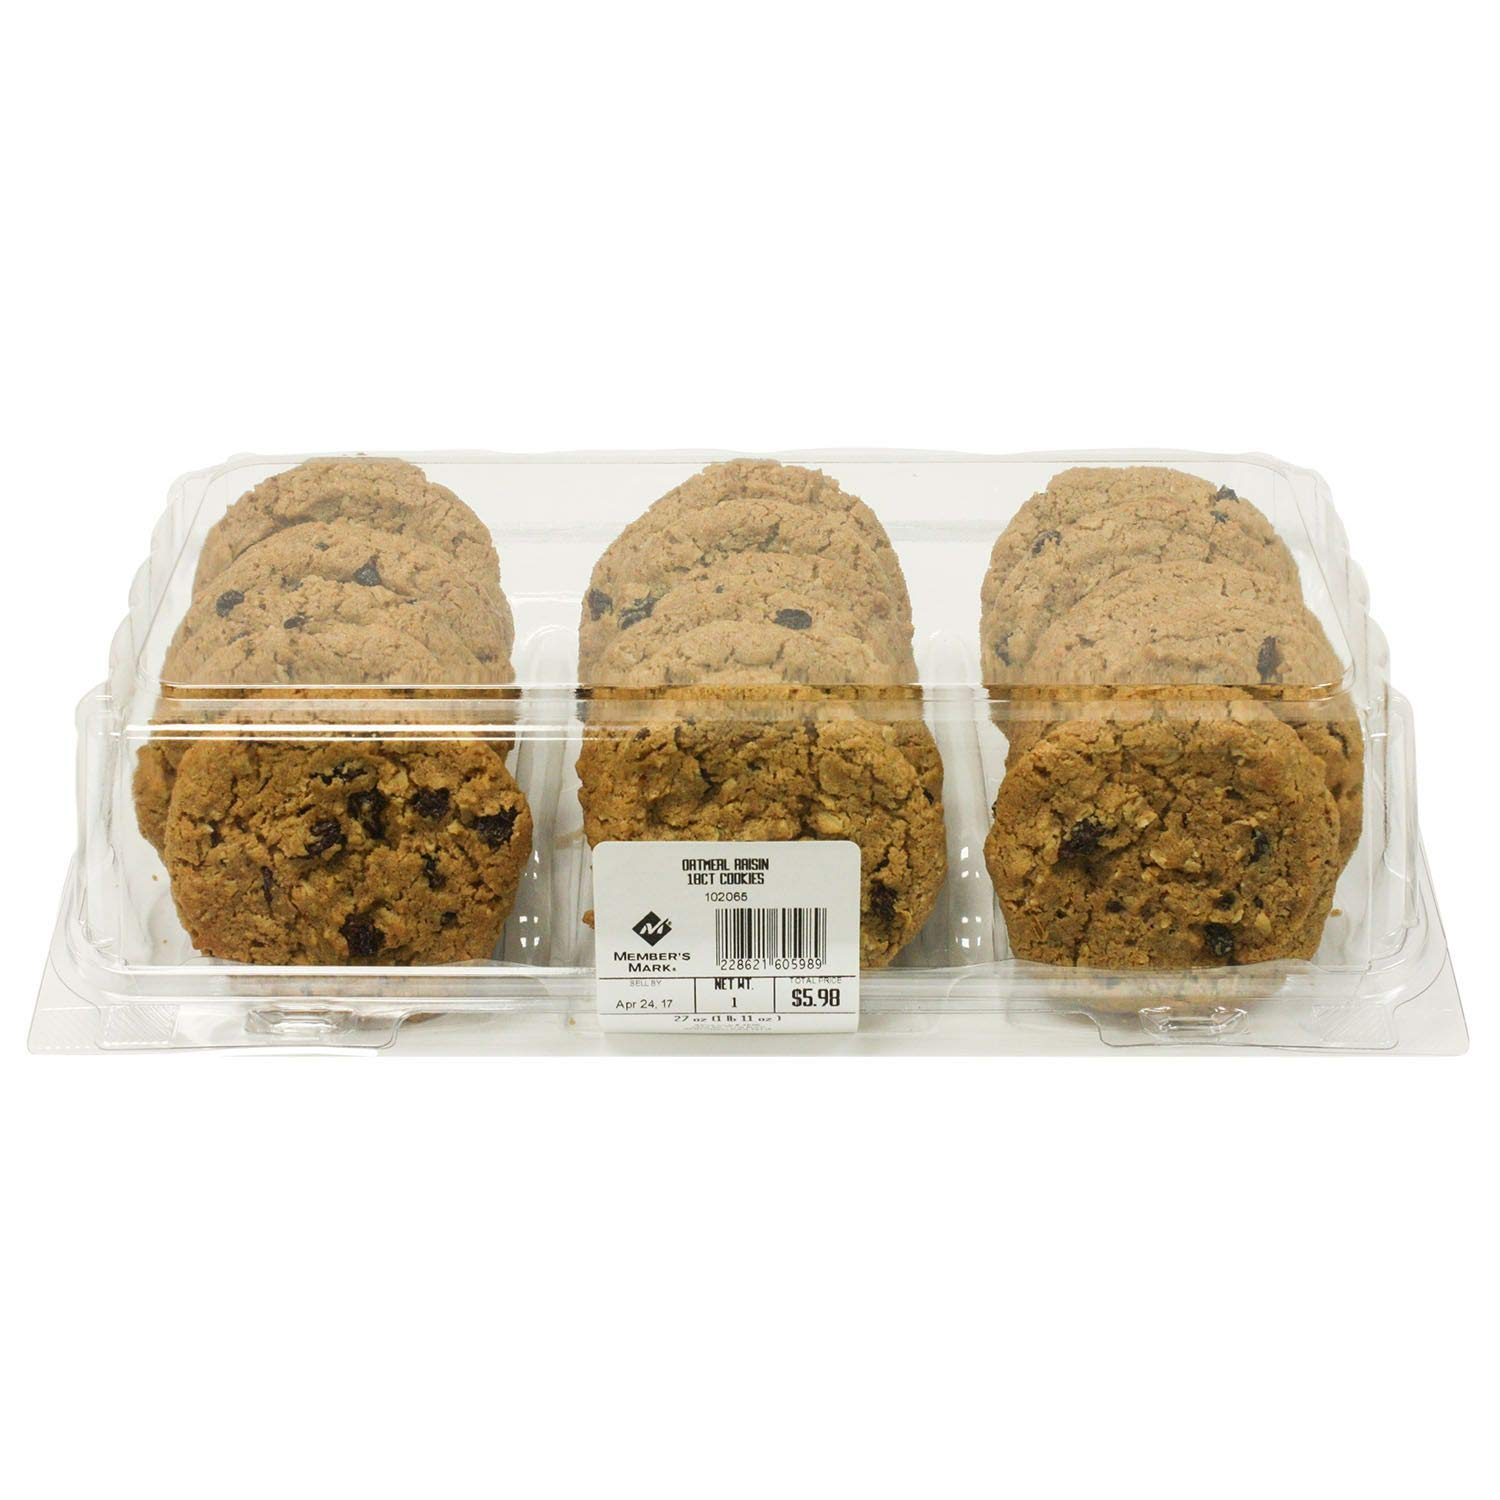 Case Sale: Member's Mark Oatmeal Raisin Cookies 144 ct. (pack of 4) A1